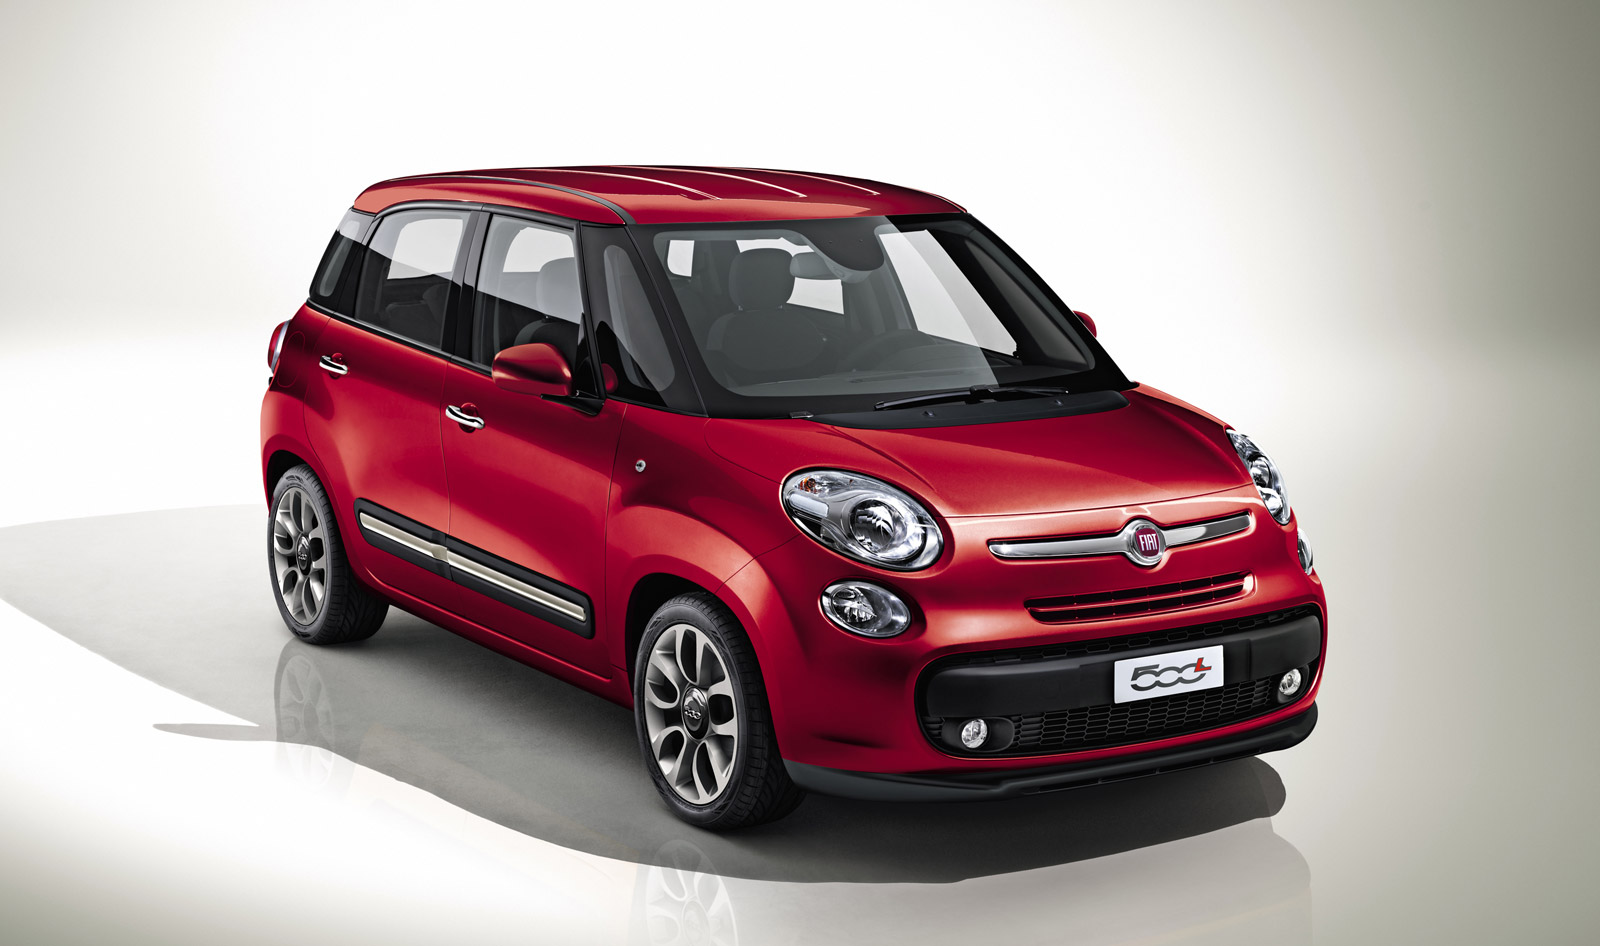 2013 fiat 500l to debut at 2012 geneva motor show. Black Bedroom Furniture Sets. Home Design Ideas